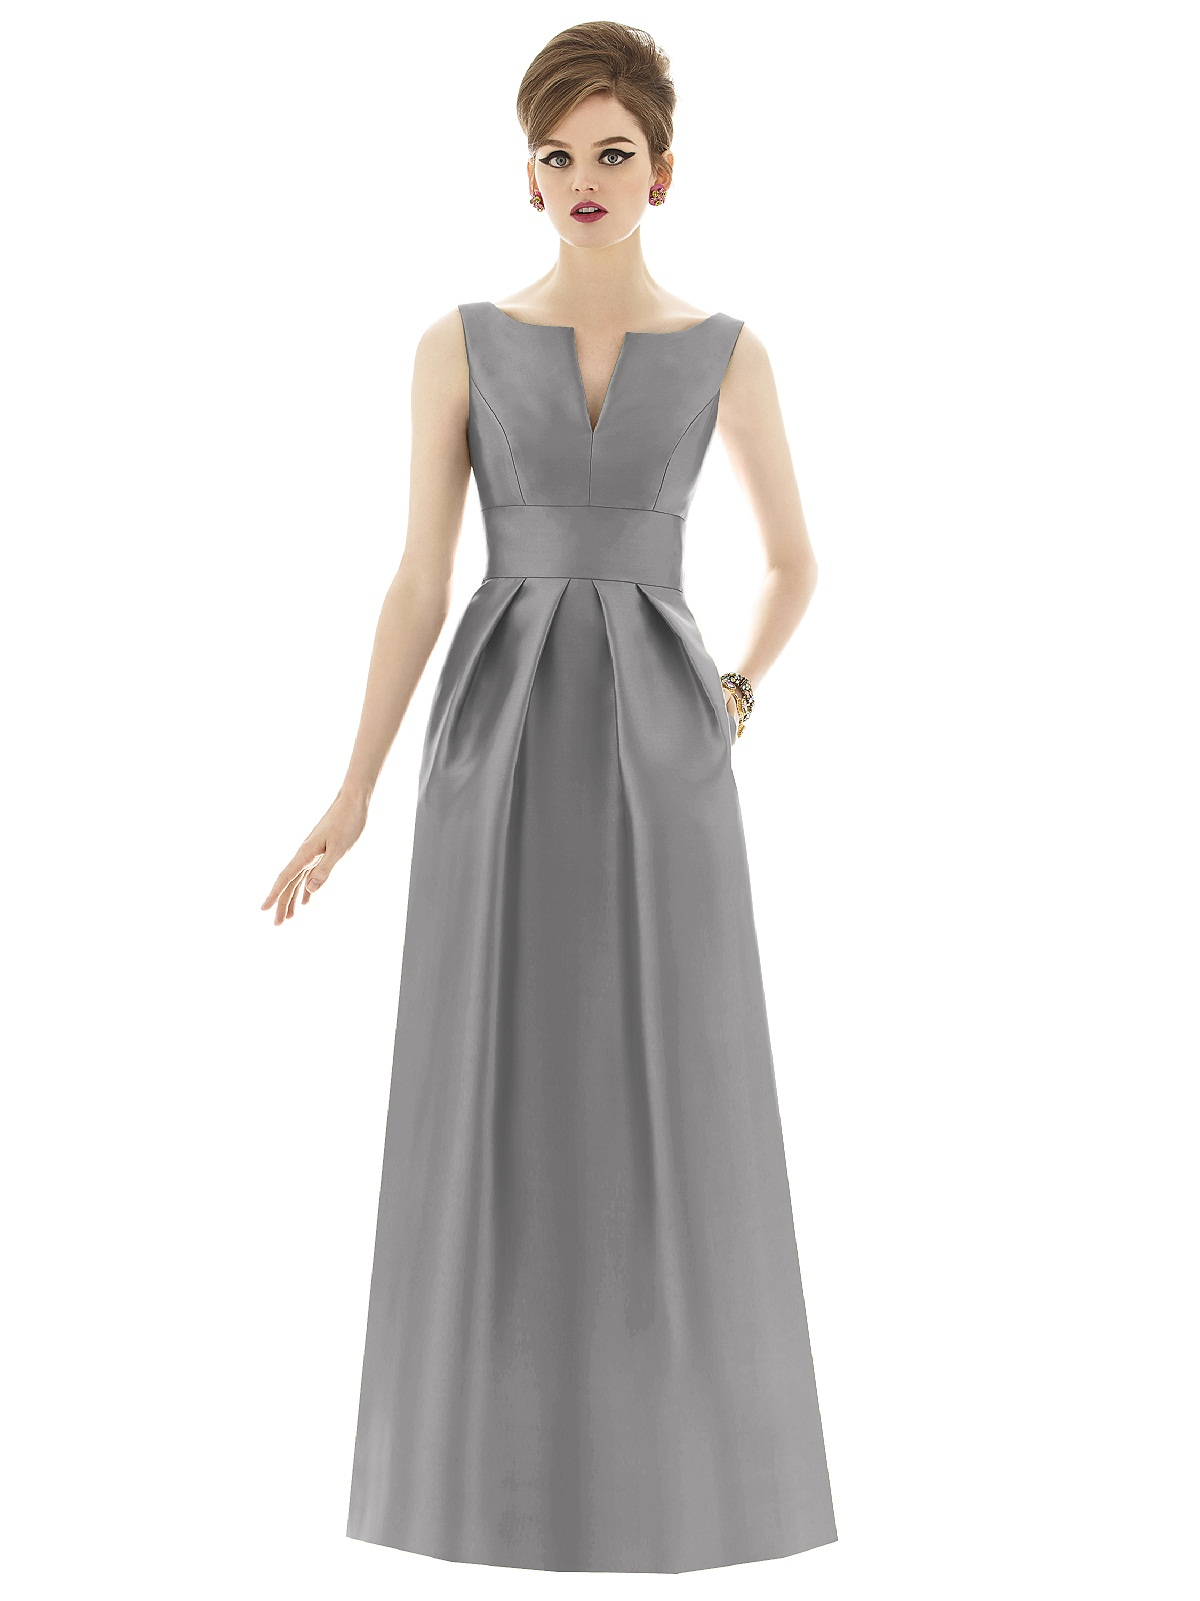 ALFRED SUNG BRIDESMAID DRESSESALFRED SUNG DRESSES D 655THE DESSY ...